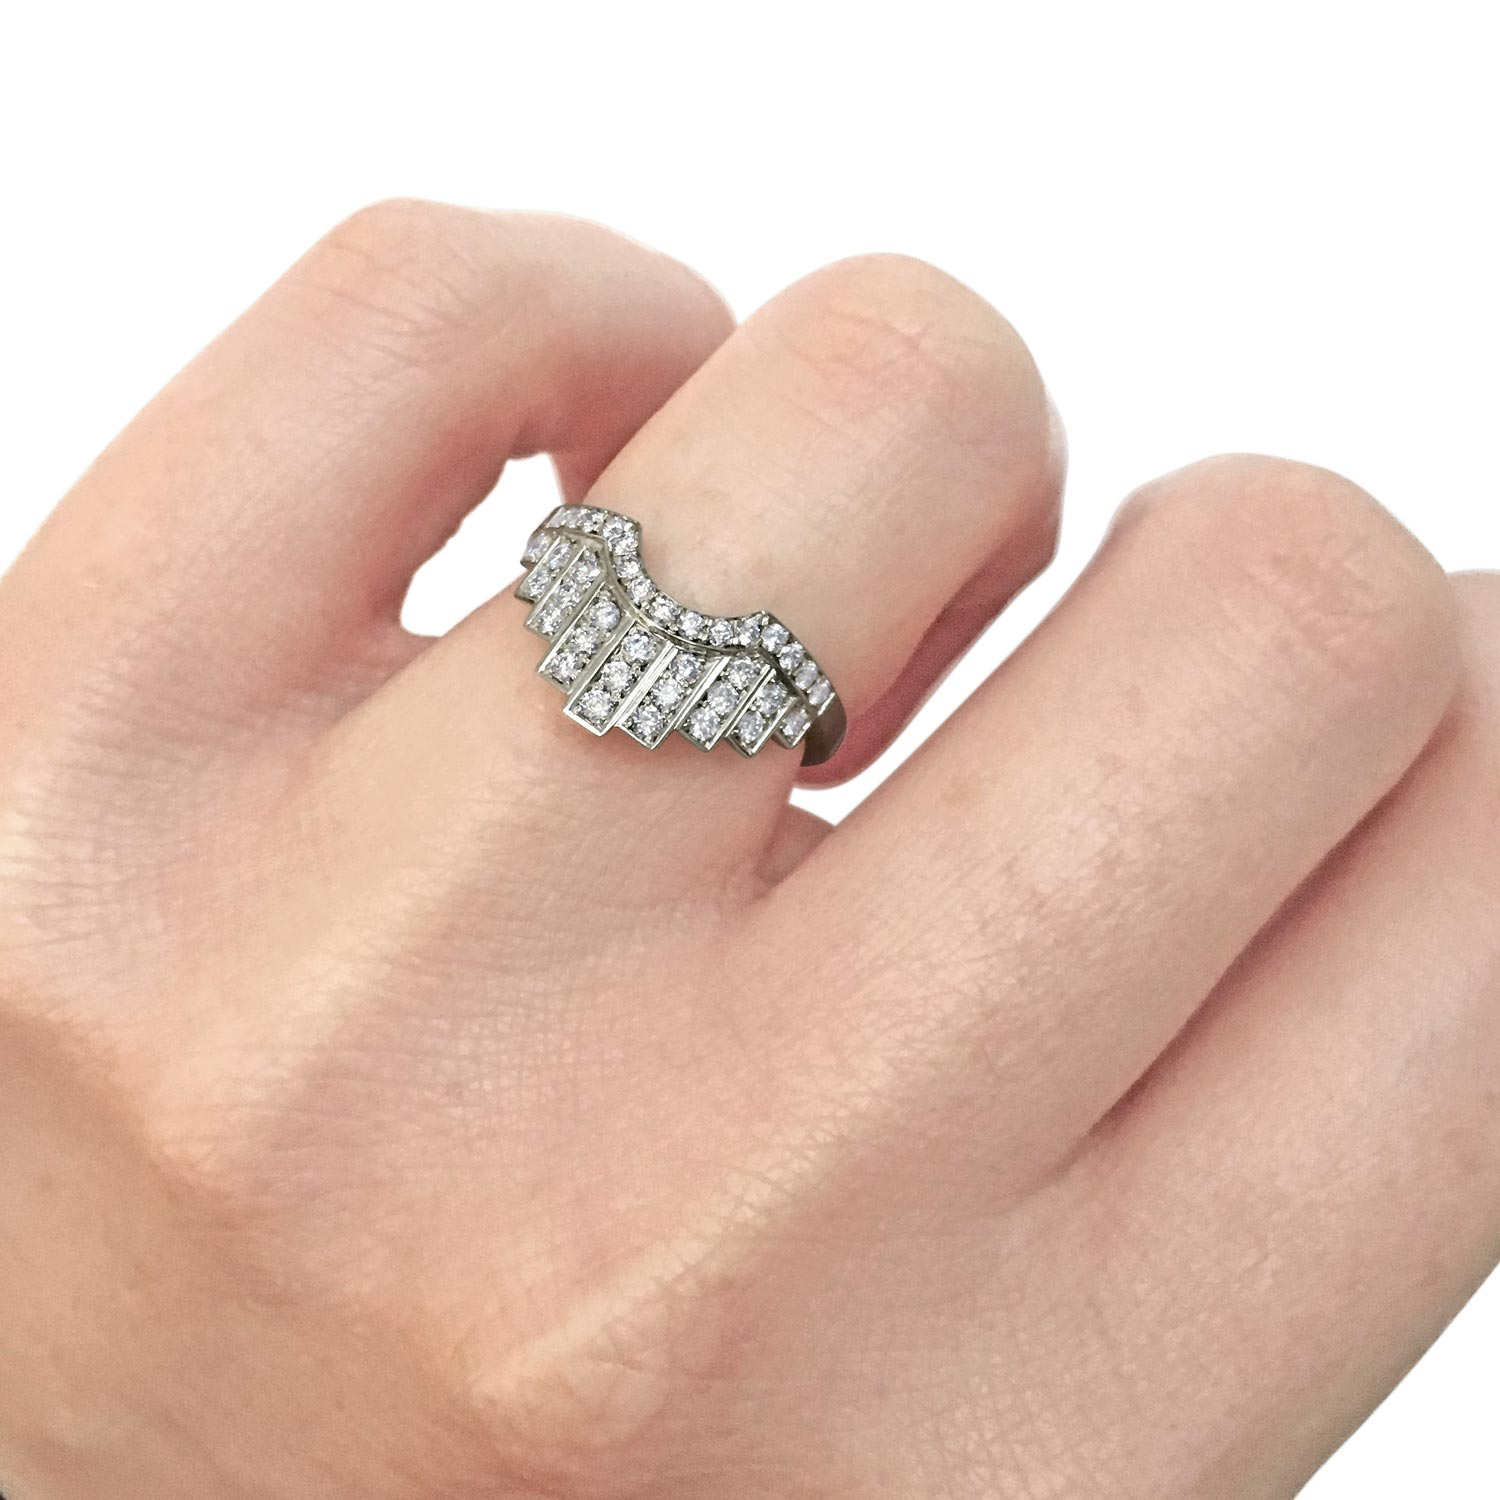 Bespoke fitted brilliant-cut diamond and platinum wedding ring